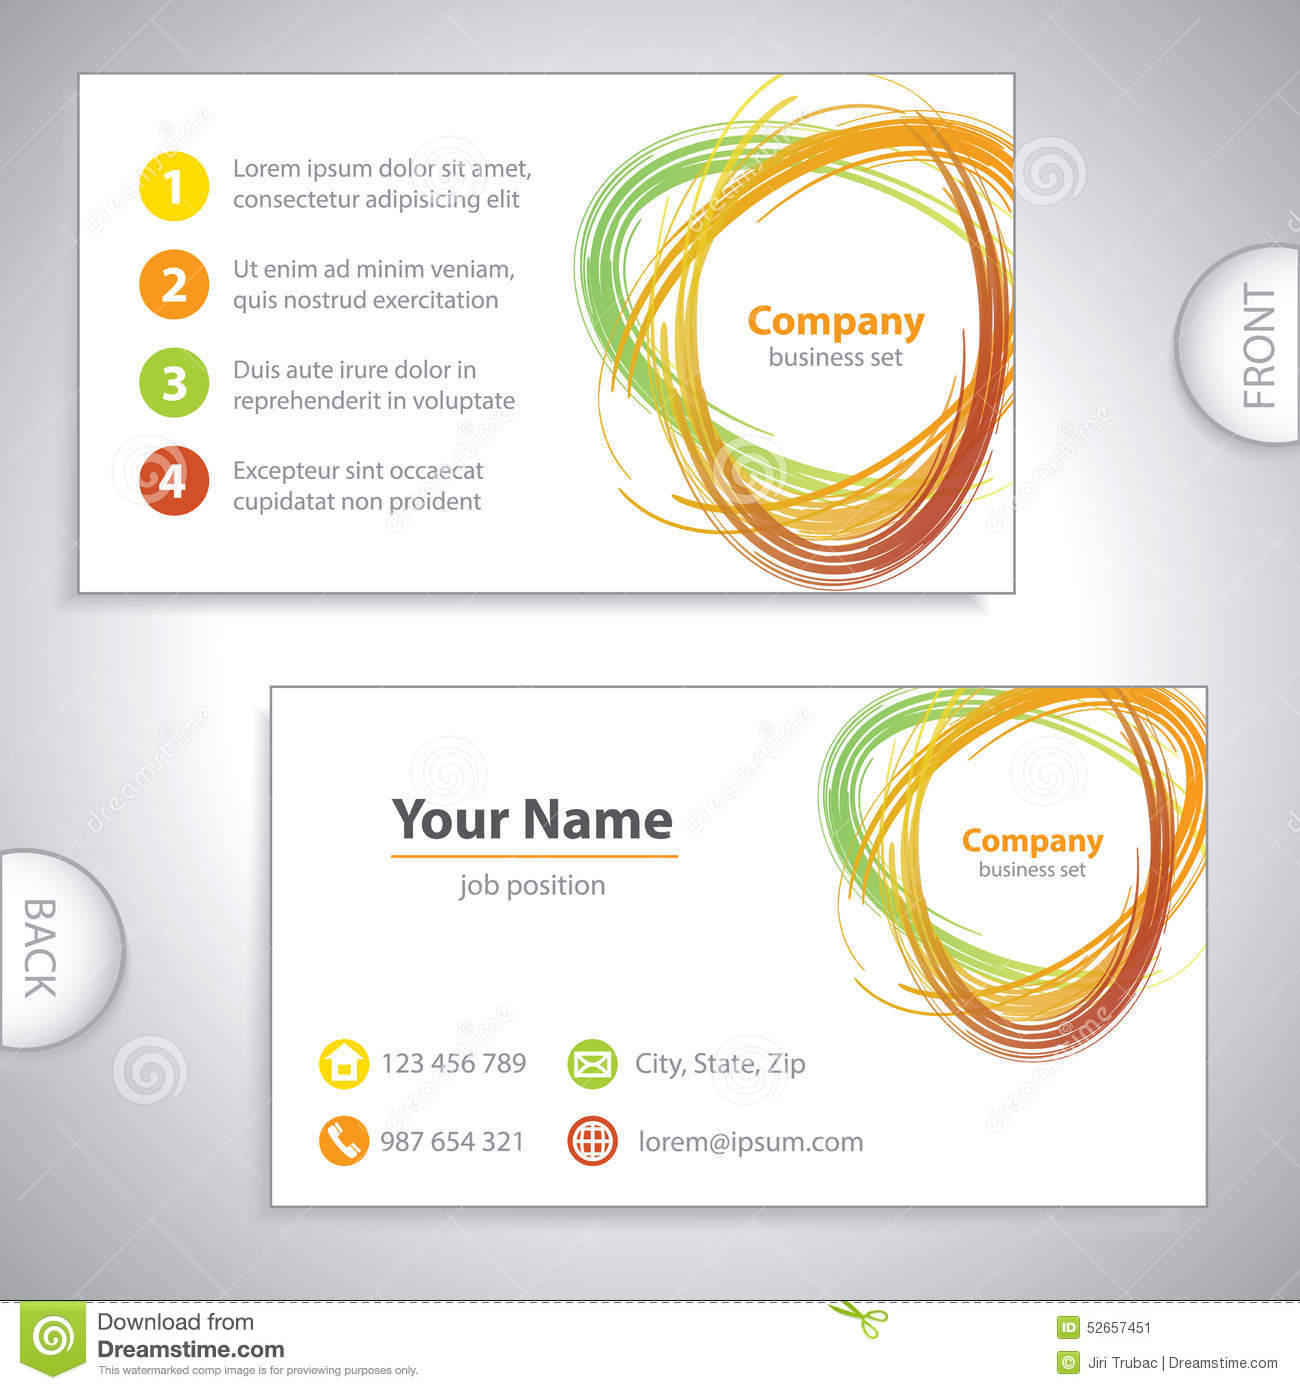 Business card recycling mix environmental variation orange download business card recycling mix environmental variation orange stock illustration illustration of colourmoves